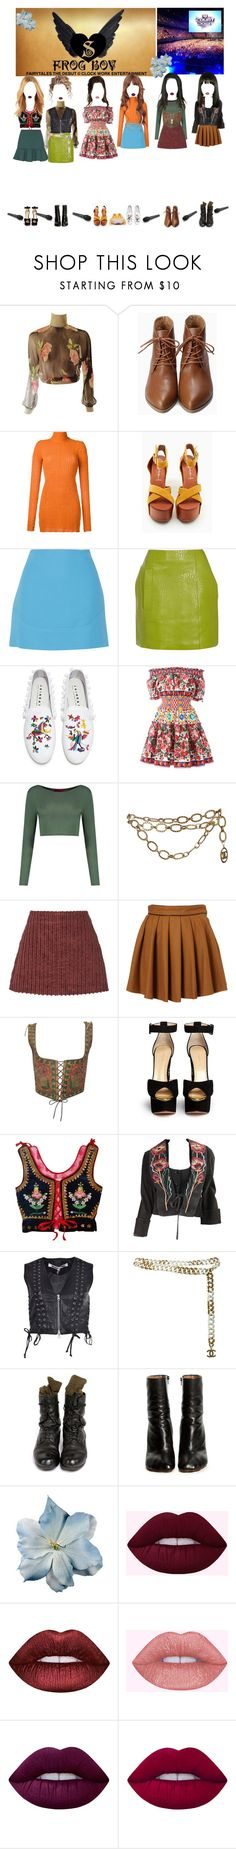 """""""«MCOUNTDOWN» SAINTS DEBUT STAGE"""" by cw-entertainment ❤ liked on Polyvore featuring Kitx, Jeffrey Campbell, Emilio Pucci, Victoria, Victoria Beckham, Joshua's, Dolce&Gabbana, Boohoo, Chanel, Isa Arfen and Charlotte Olympia"""